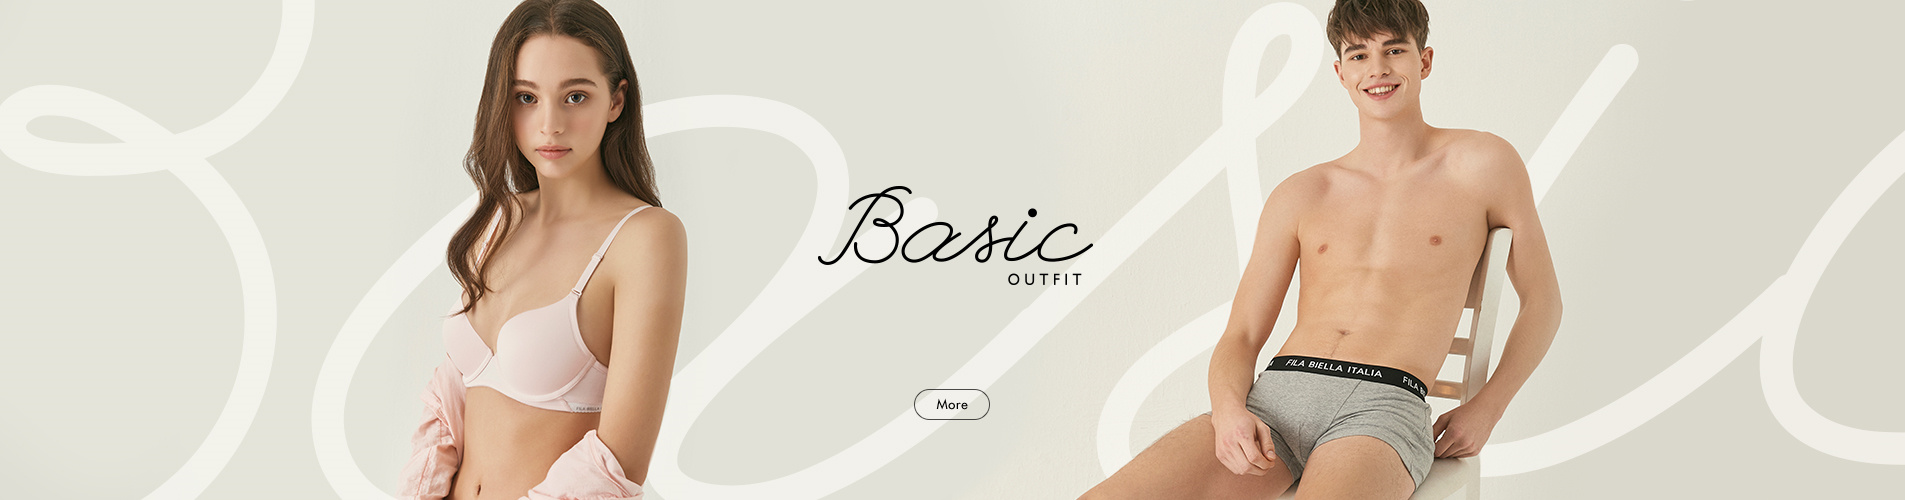 OUTFIT BASIC<br>베이직부터 완벽하게!